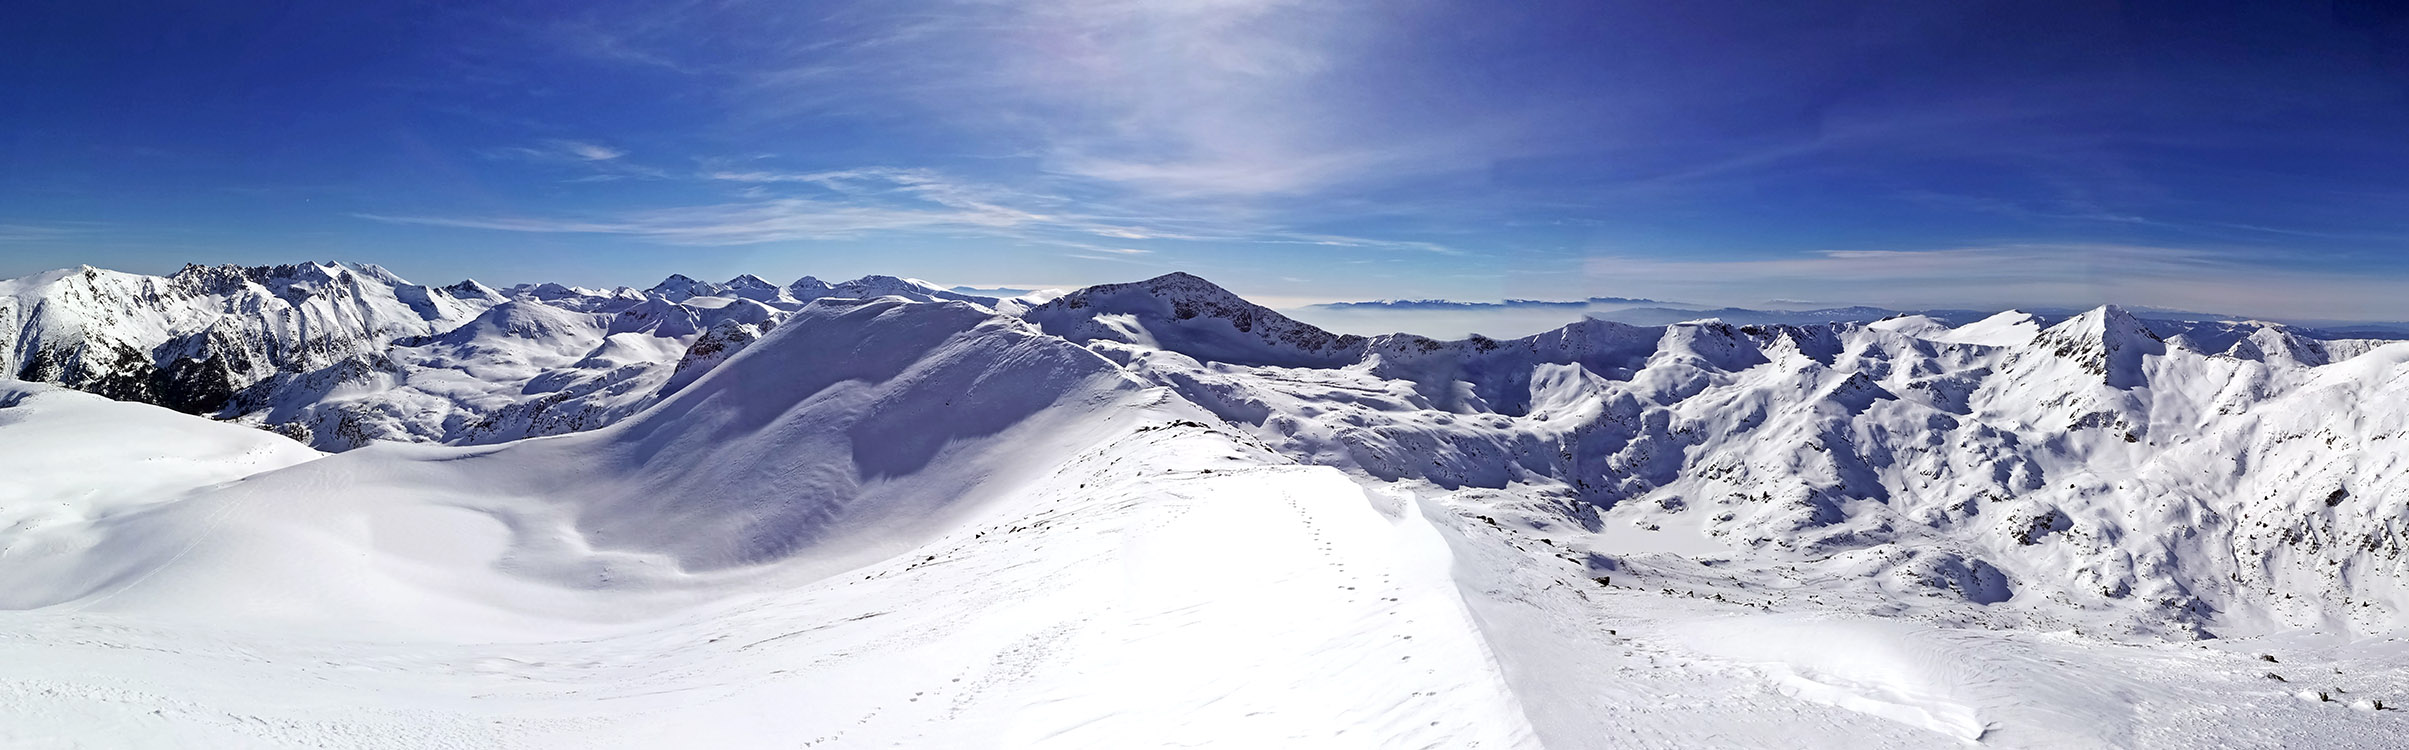 Looking south from the Todorka peak. On a sunny day like this you can see the giant wind turbines that are in Greece.